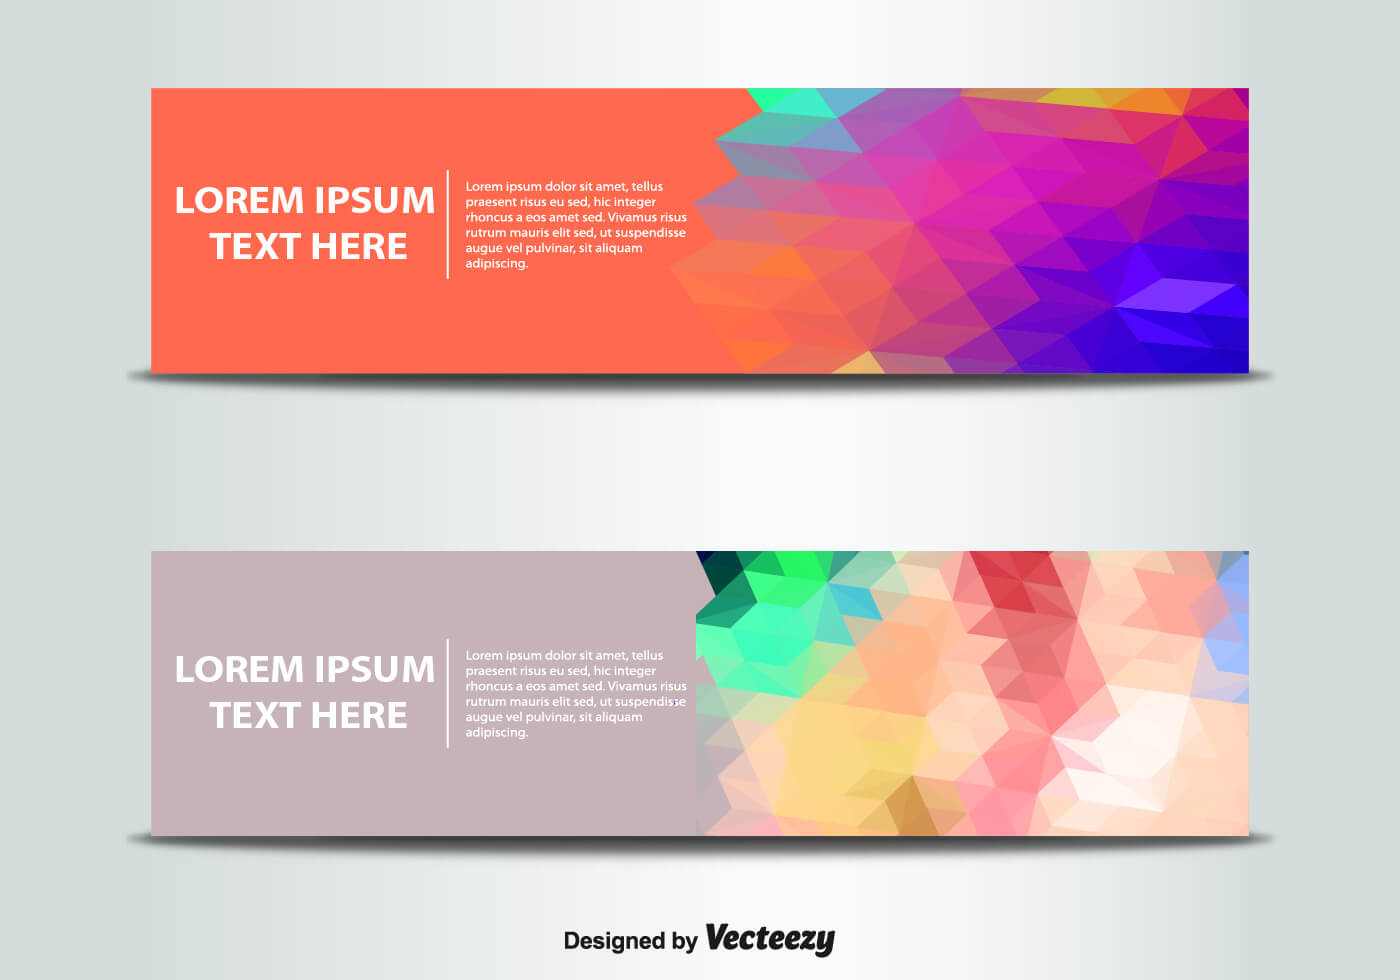 Abstract Banner Templates Vector | Free Vector Download In pertaining to Website Banner Templates Free Download